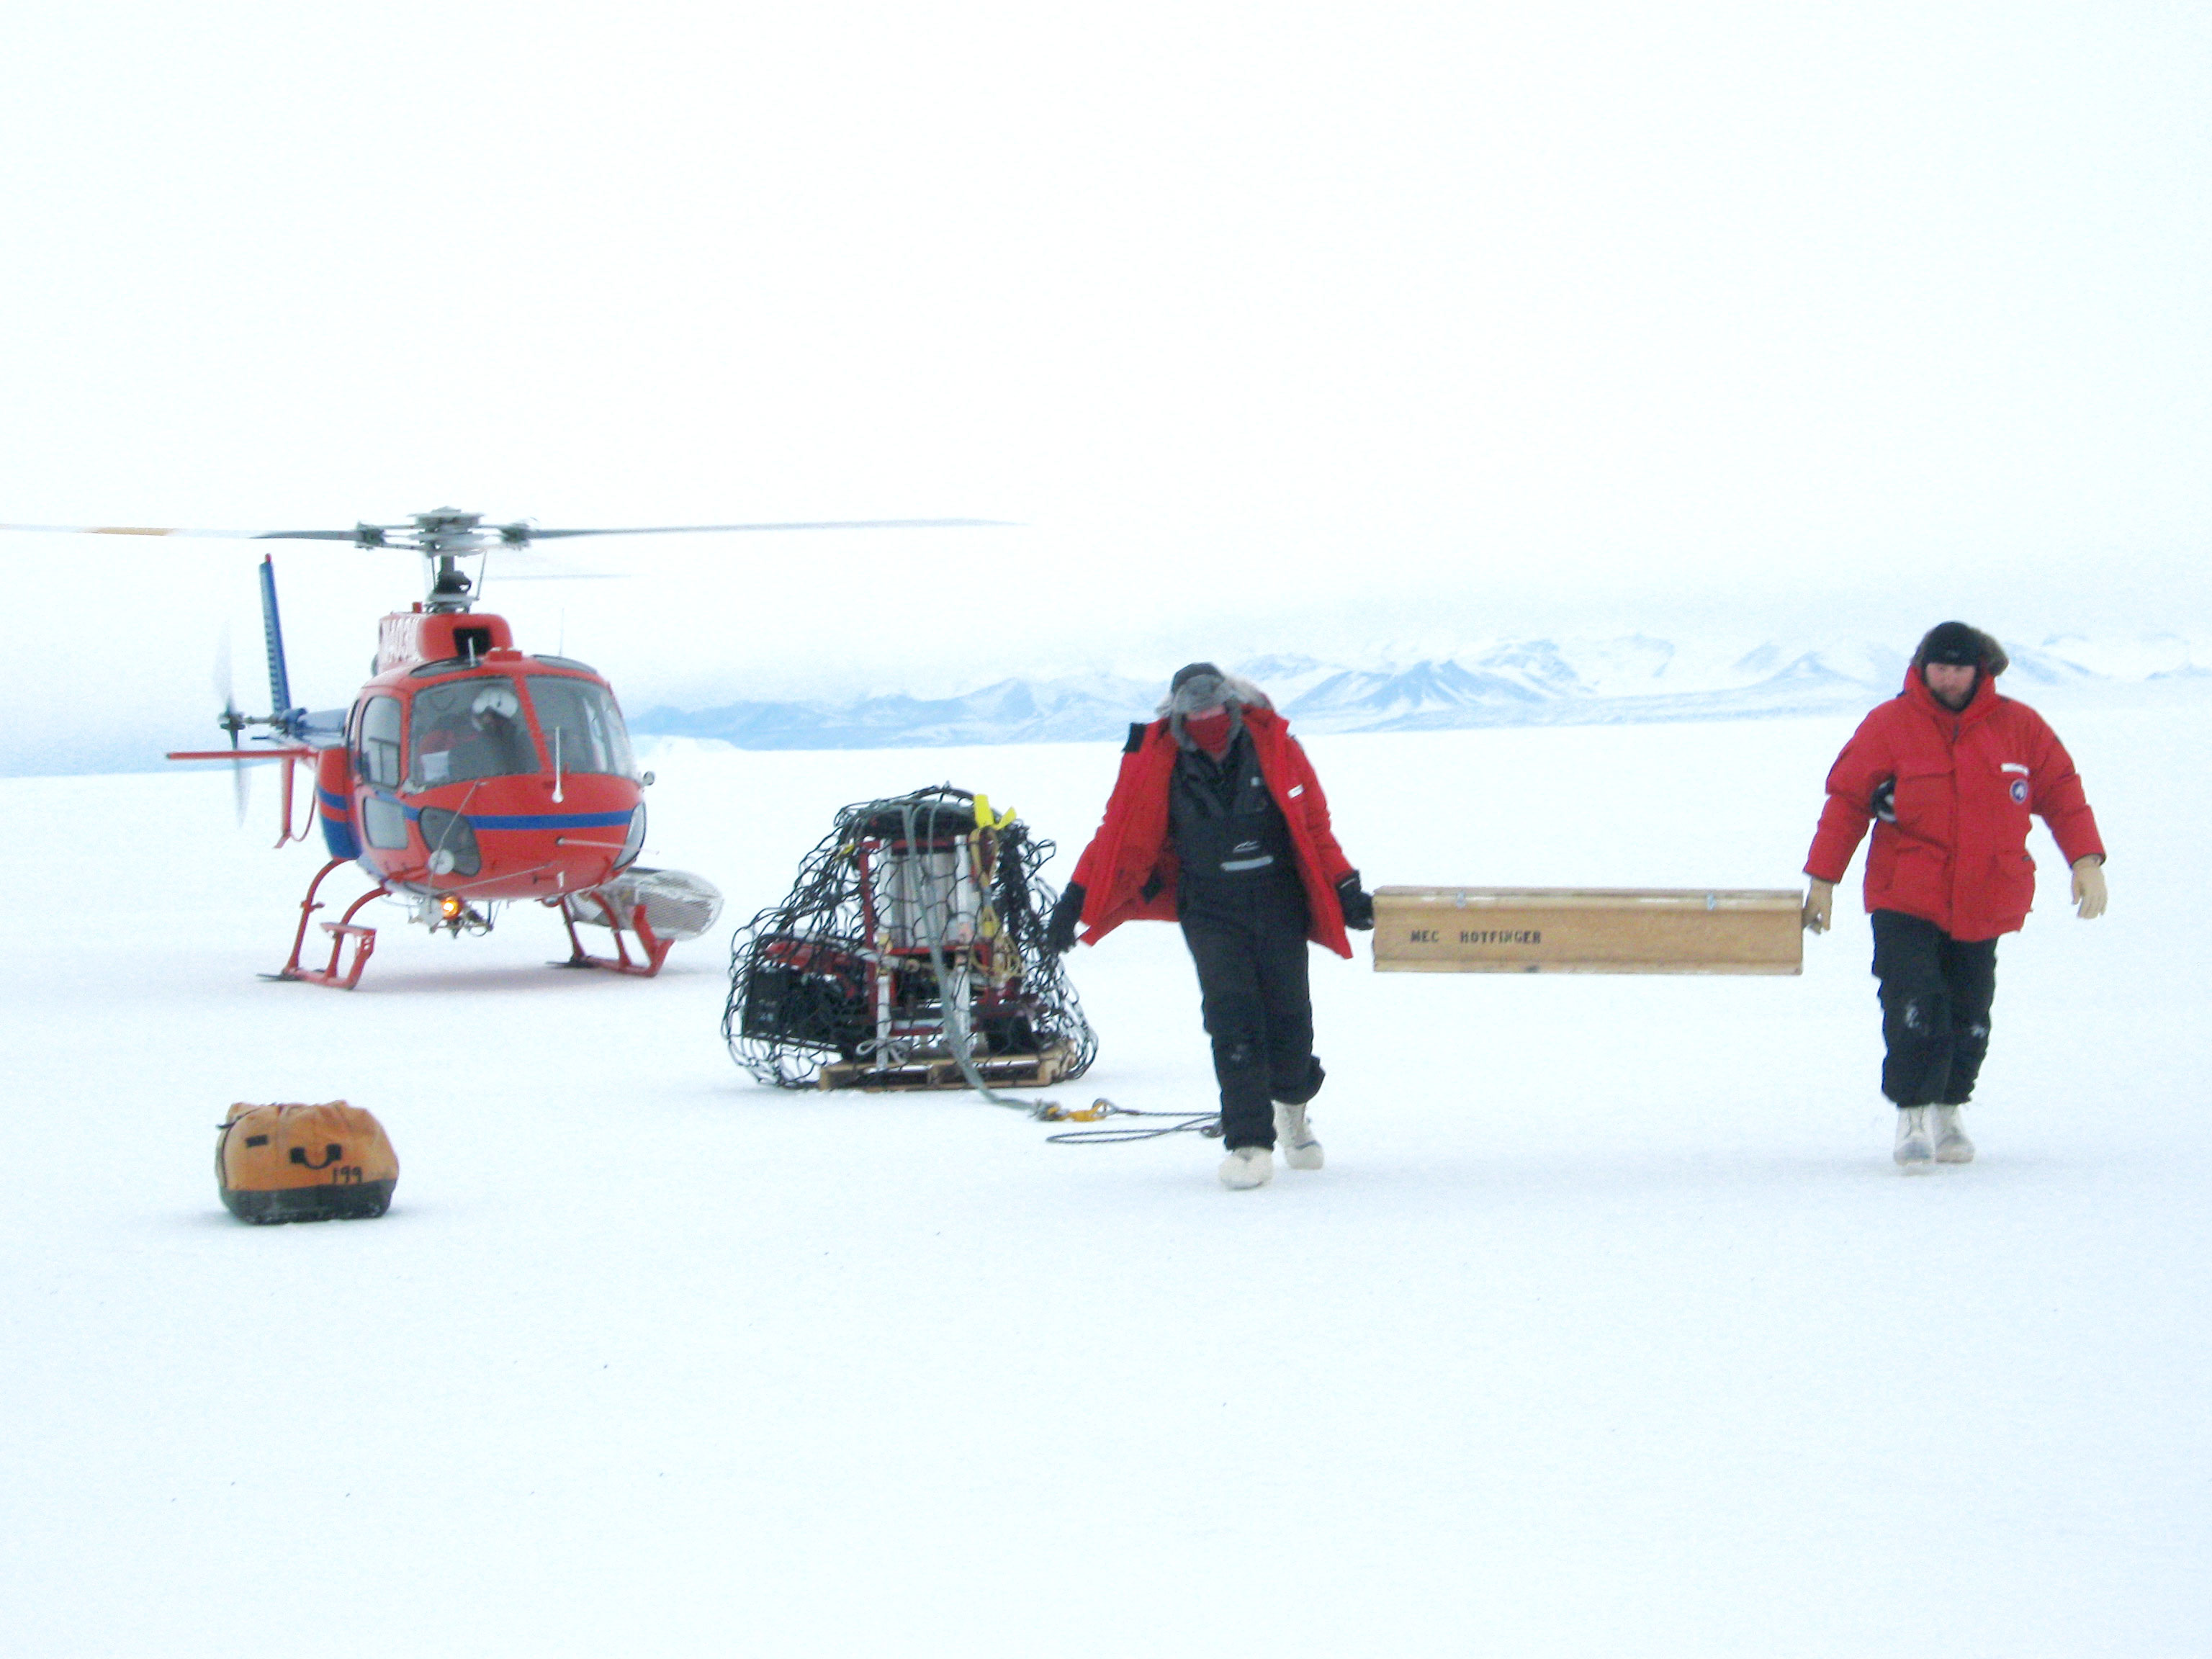 Two researchers just got out an helicopter landed on ice of Antarctica